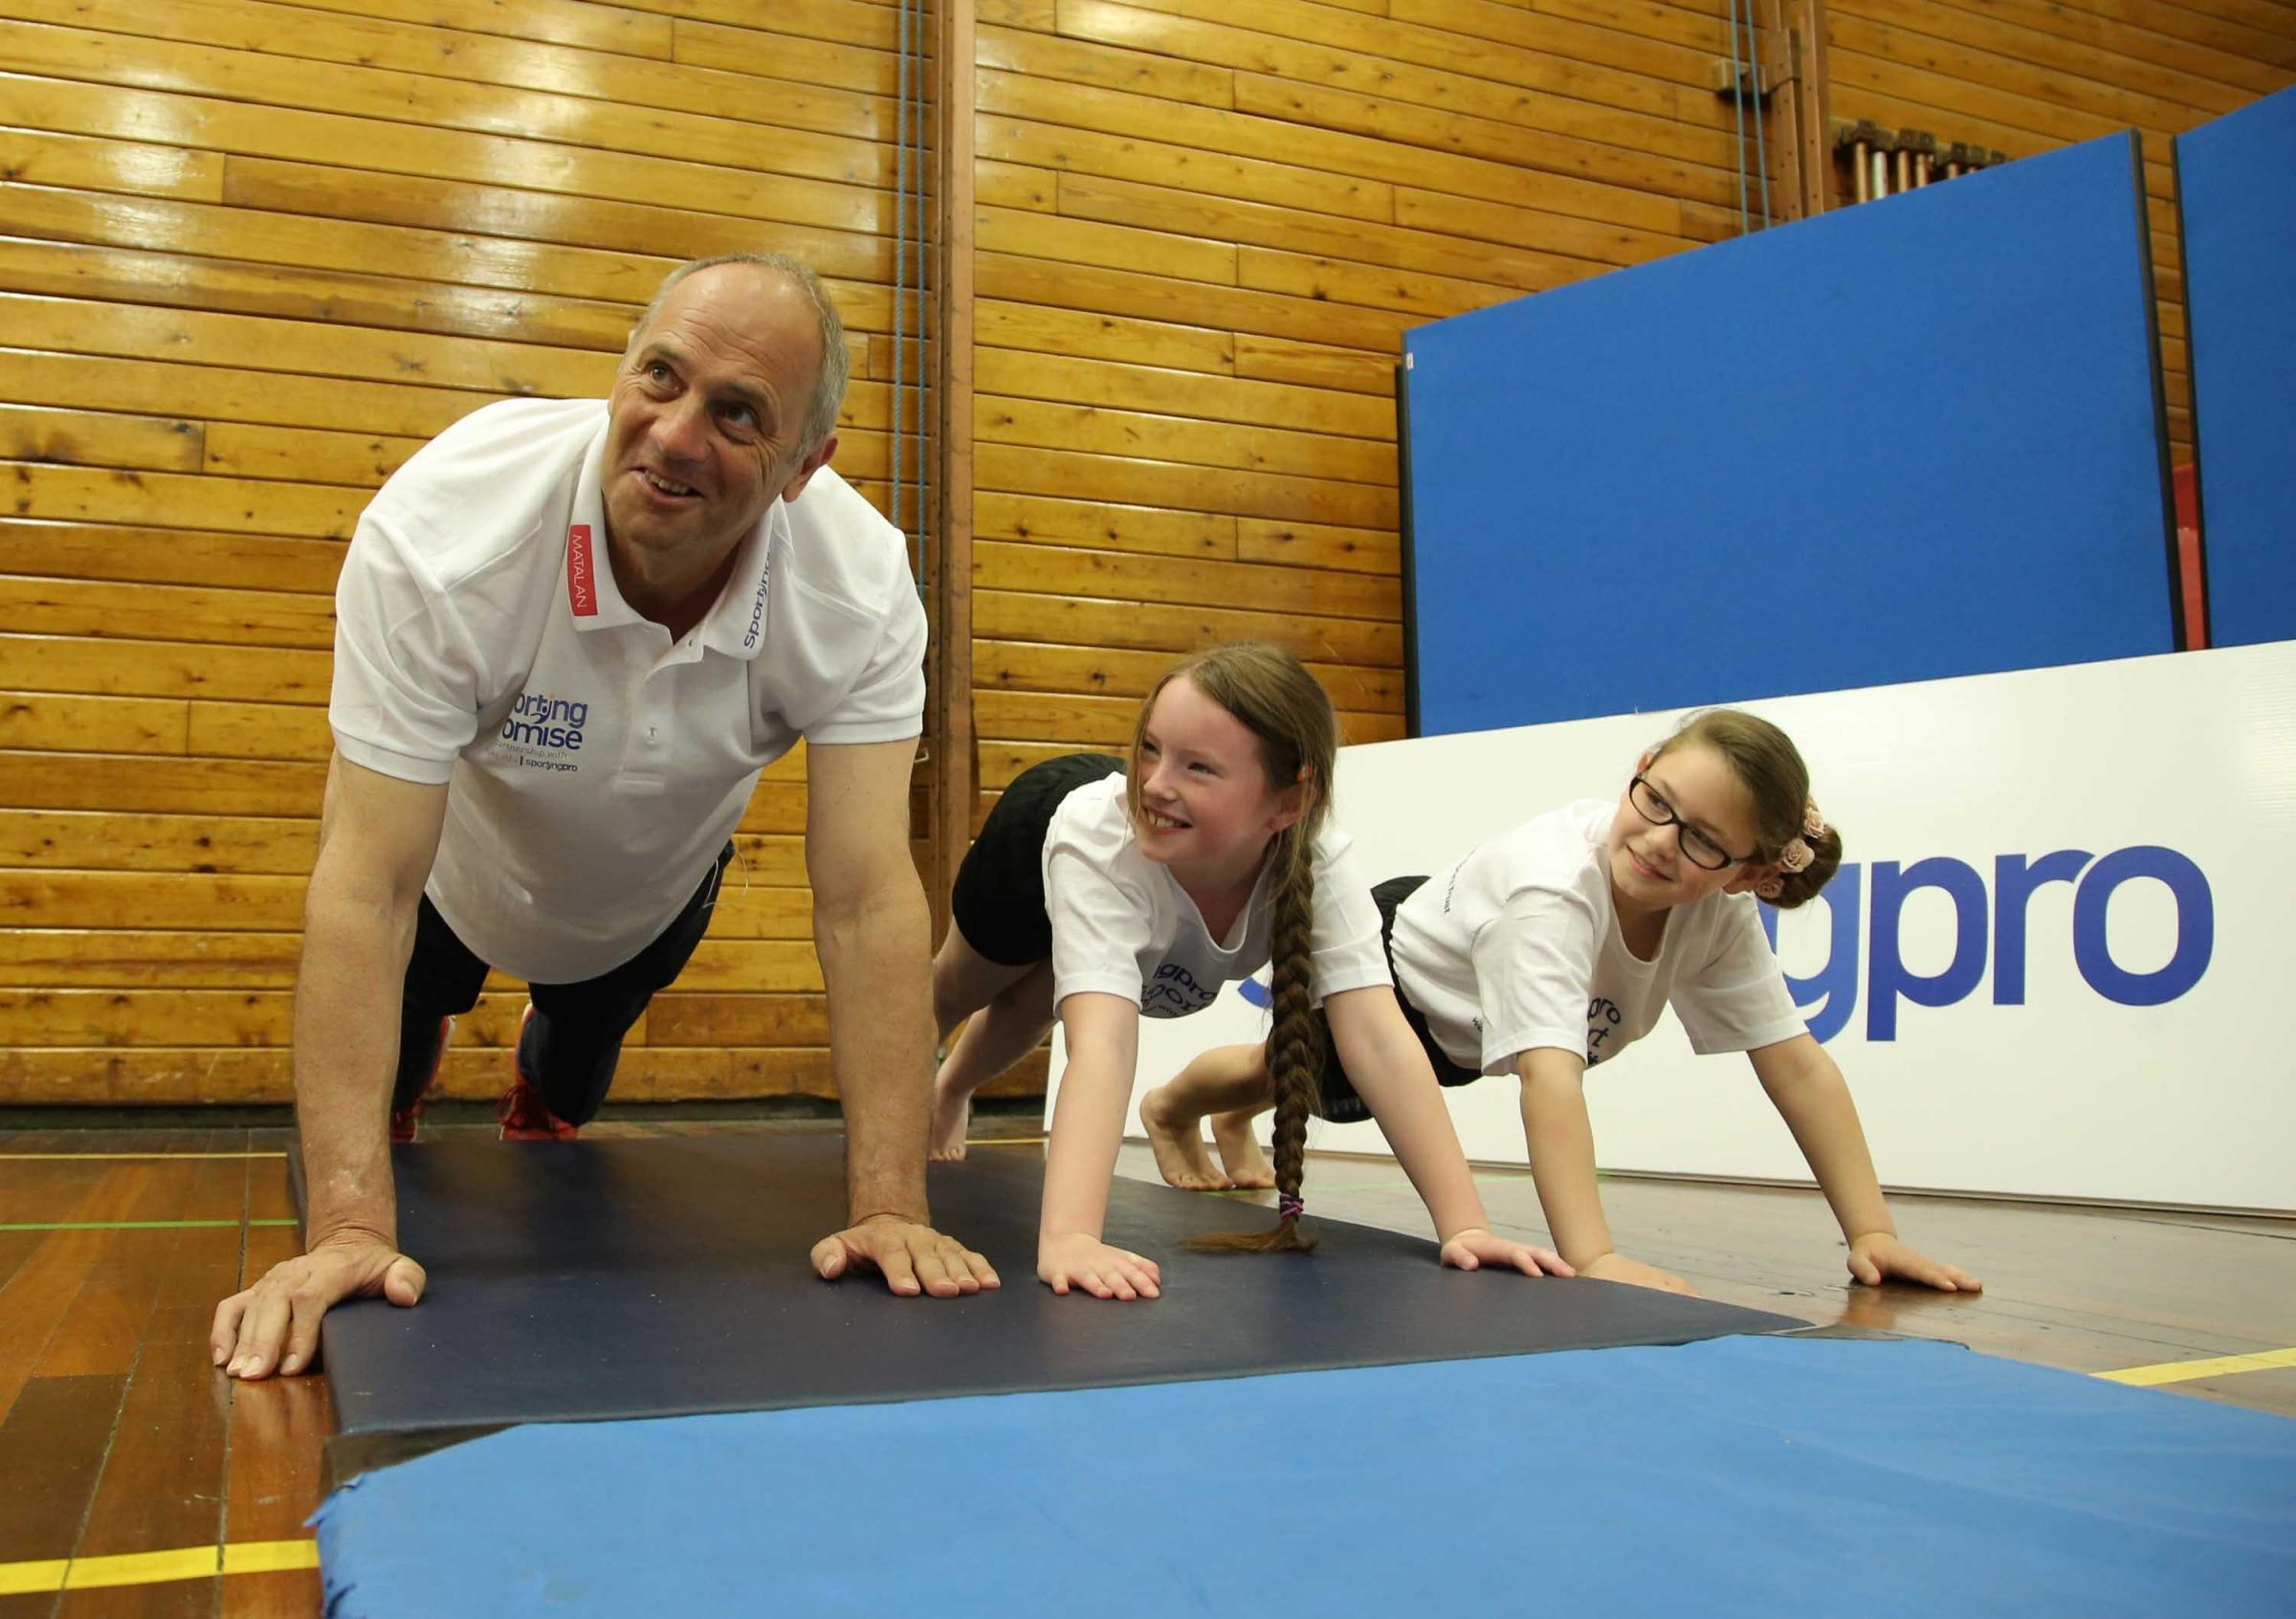 Sir Steve Redgrave tells of how sport may have saved him from a life of crime on trip to region to inspire youngsters